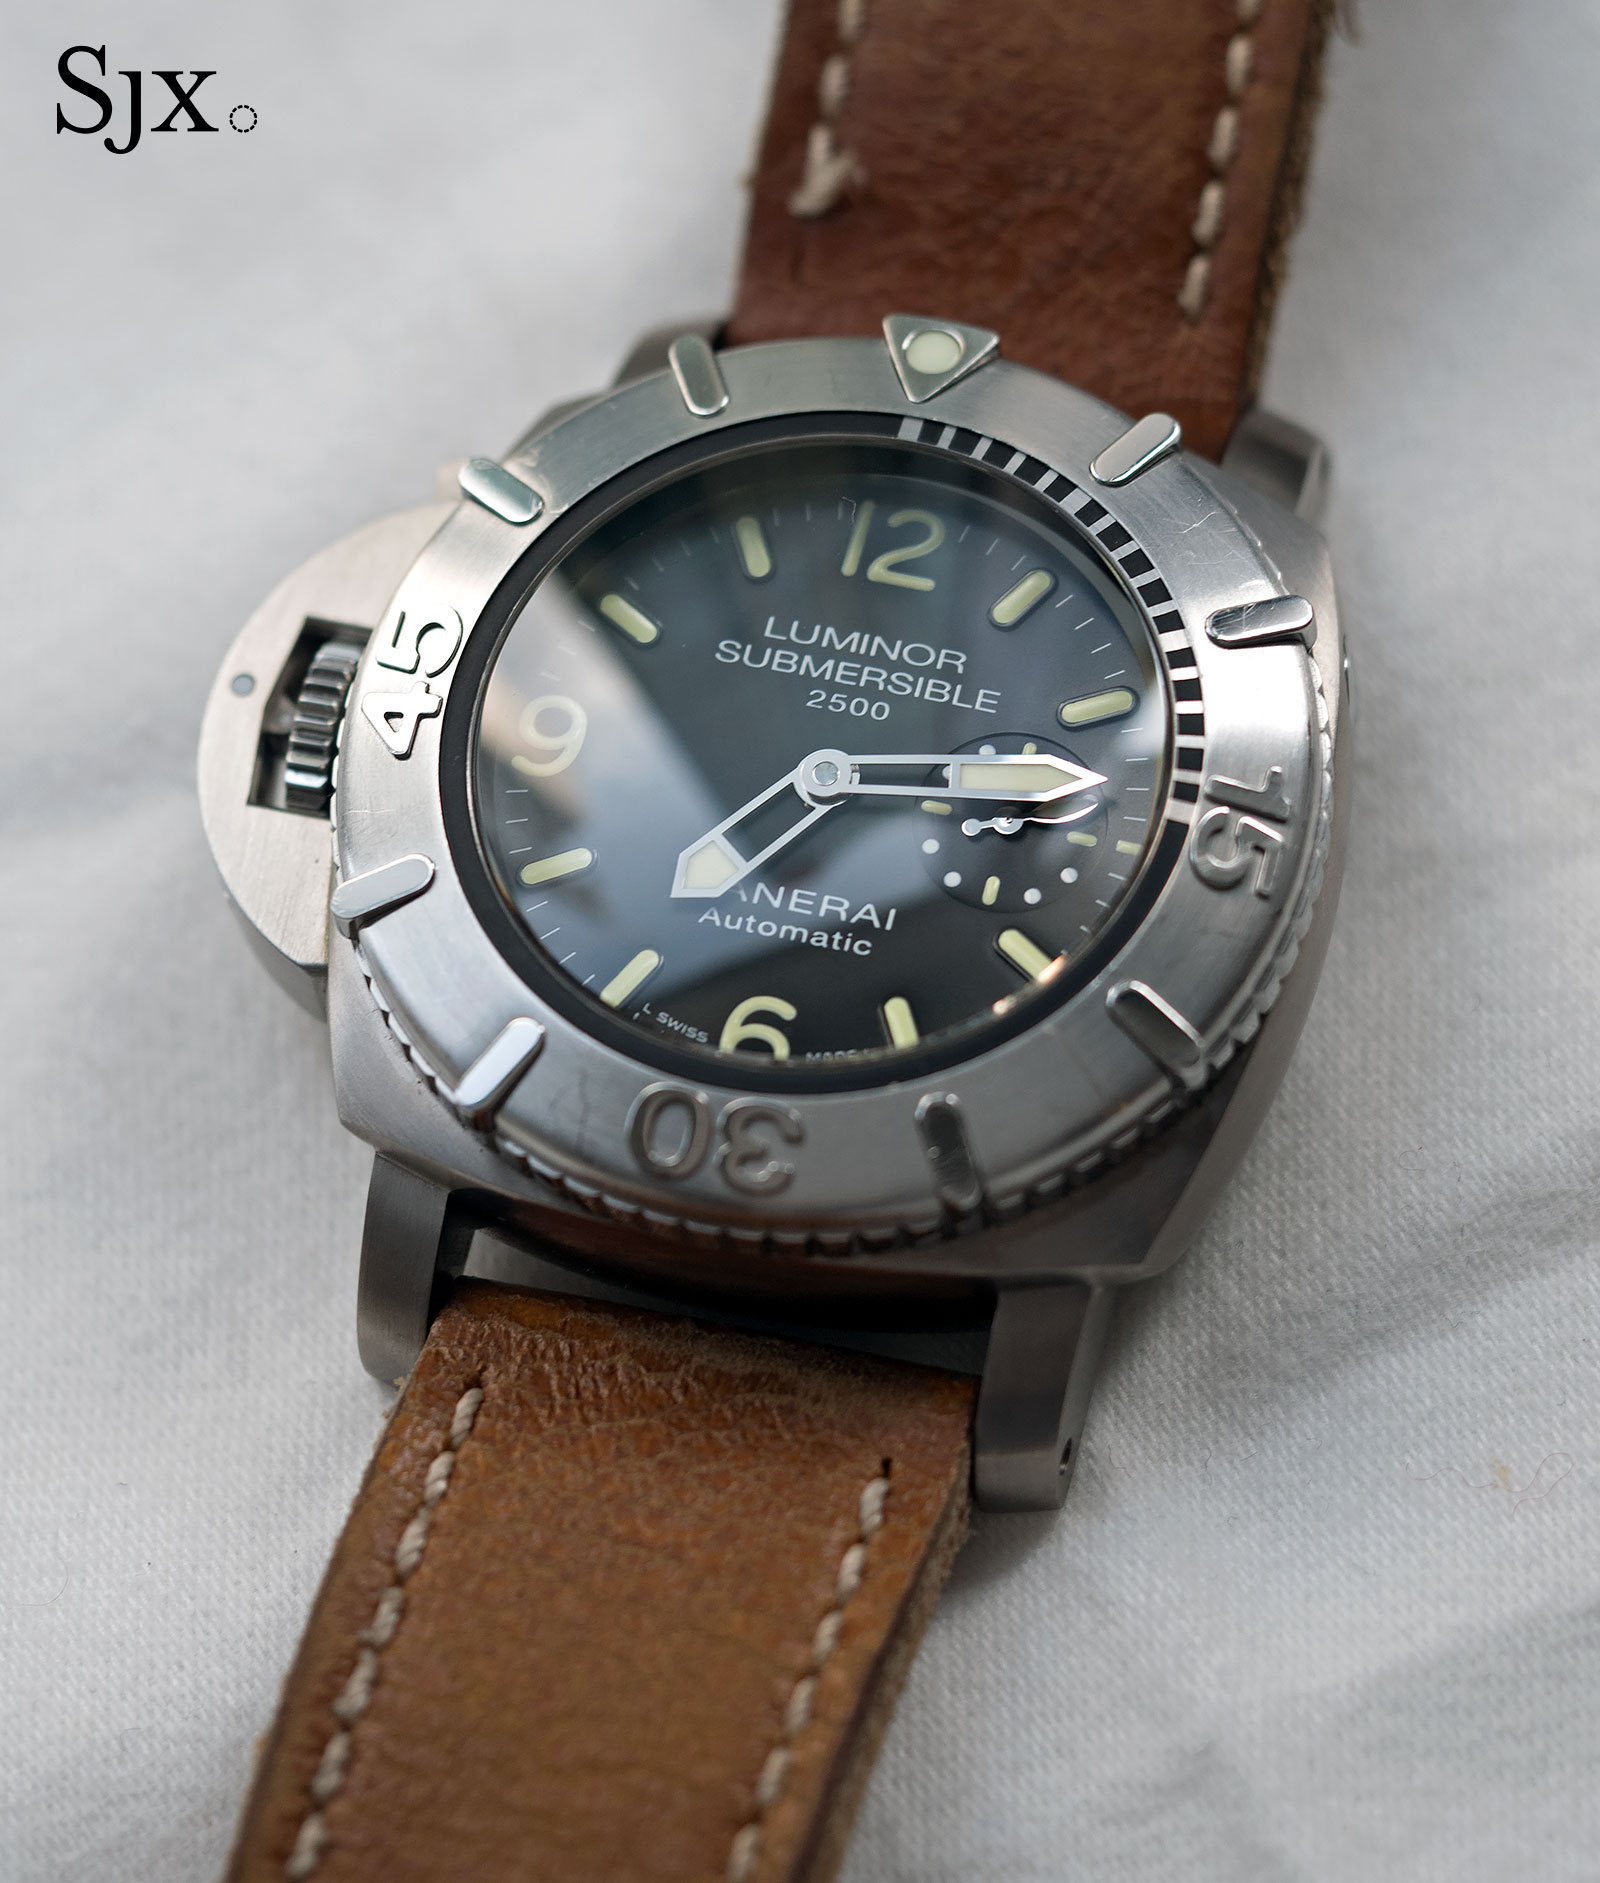 Panerai Submersible 2500 Destro Chronopassion PAM358-6